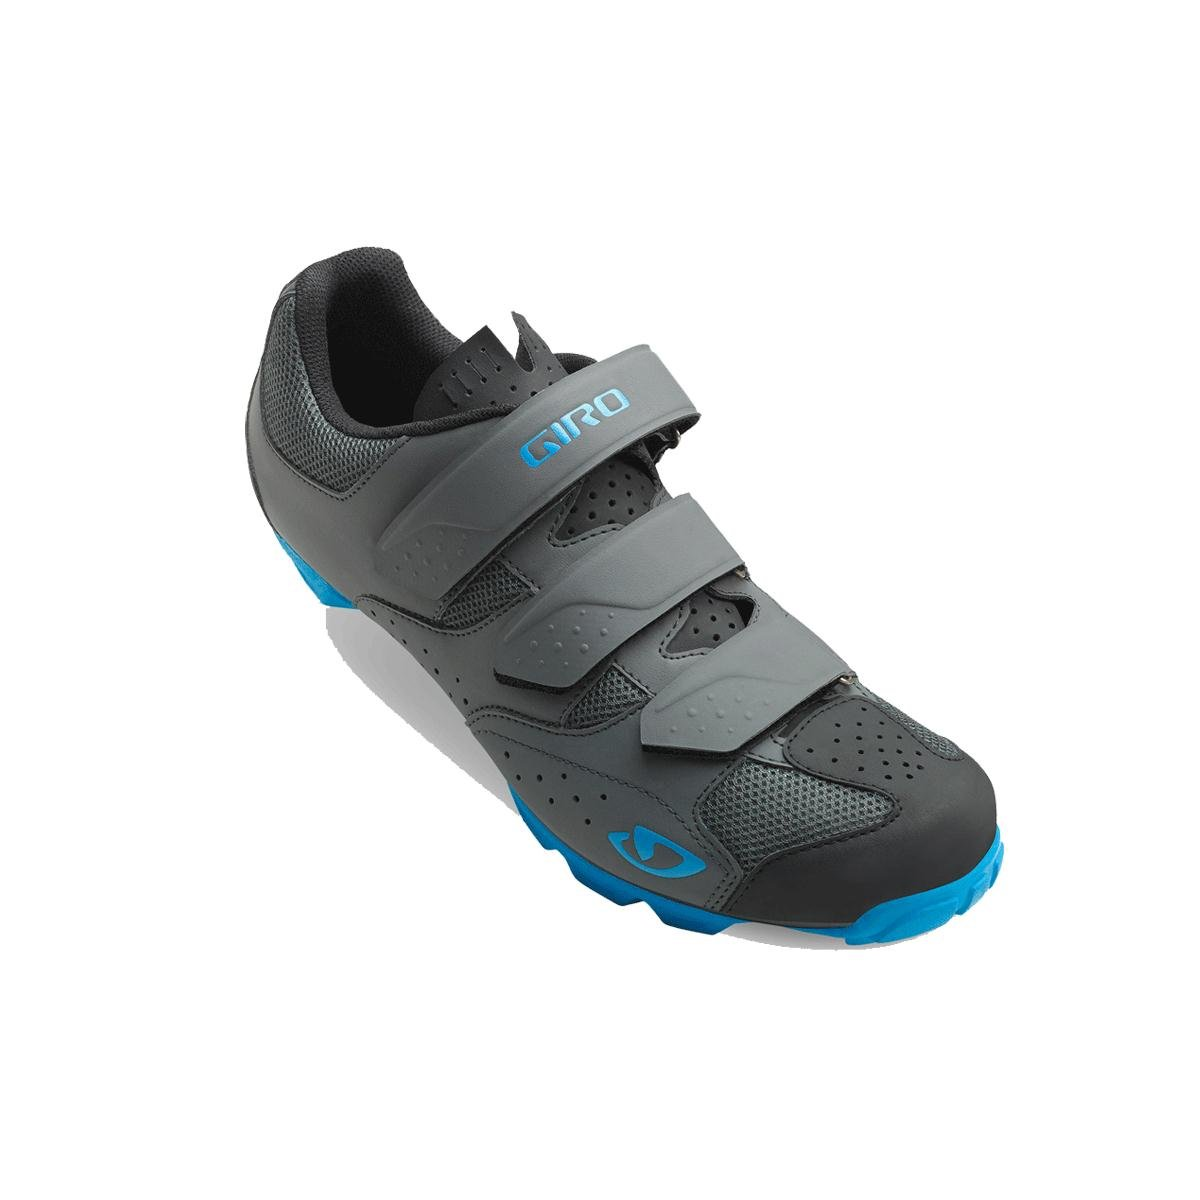 Giro Carbide R II Cycling Shoes – Men 's B075RQS5TR 41 M EU|Dark Shadow/Blue Dark Shadow/Blue 41 M EU